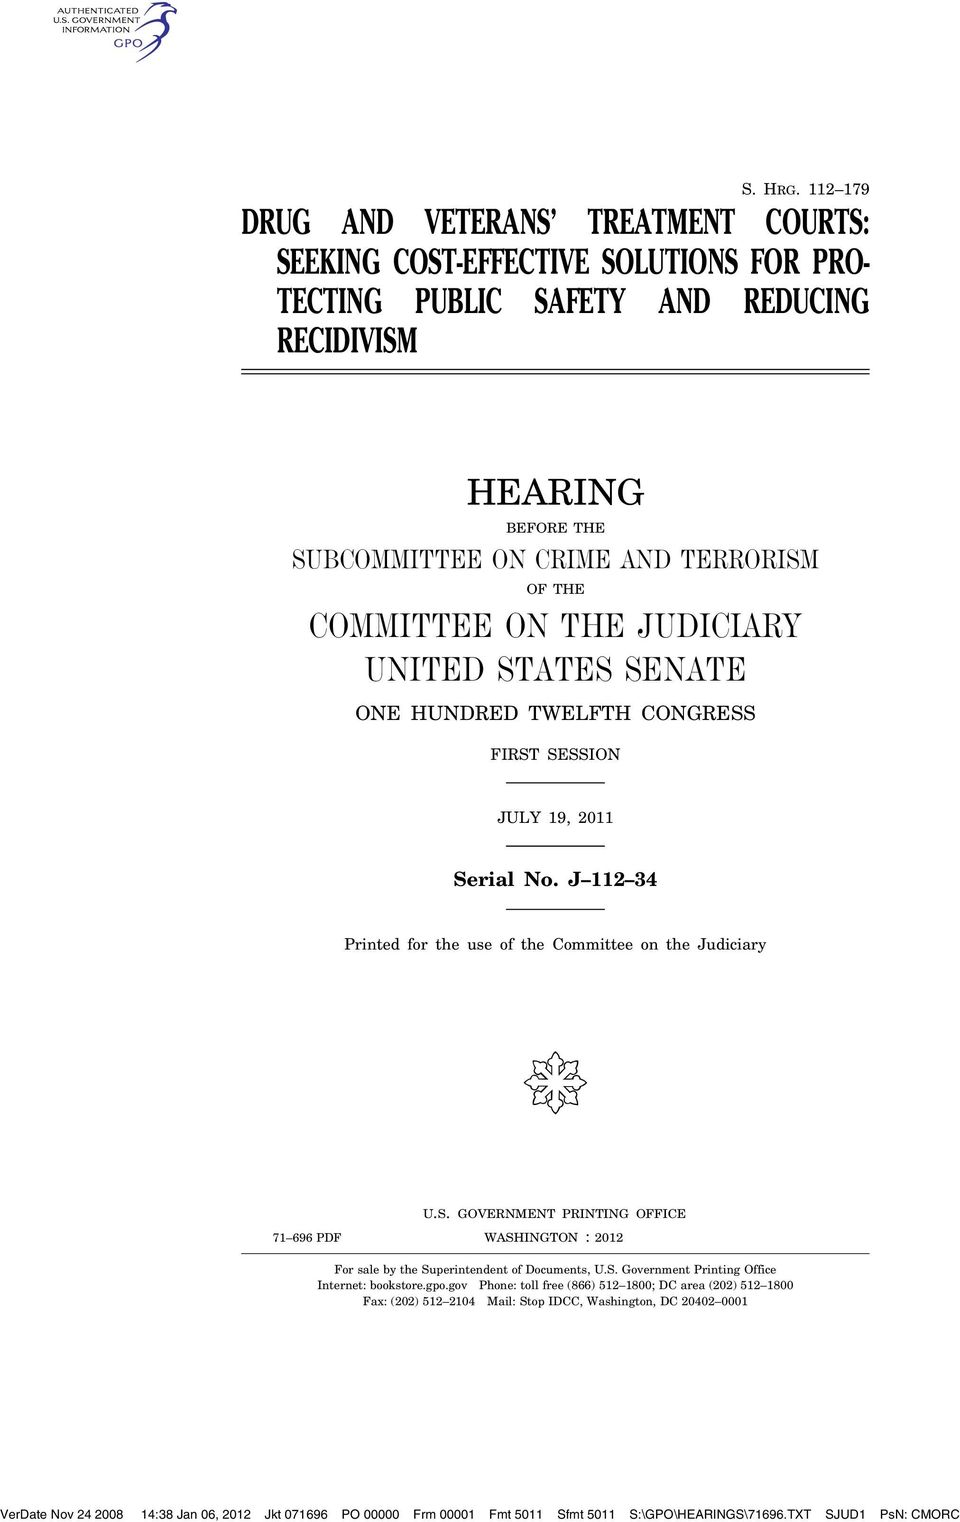 COMMITTEE ON THE JUDICIARY UNITED STATES SENATE ONE HUNDRED TWELFTH CONGRESS FIRST SESSION JULY 19, 2011 Serial No. J 112 34 Printed for the use of the Committee on the Judiciary ( U.S. GOVERNMENT PRINTING OFFICE WASHINGTON 71 696 PDF : 2012 For sale by the Superintendent of Documents, U.